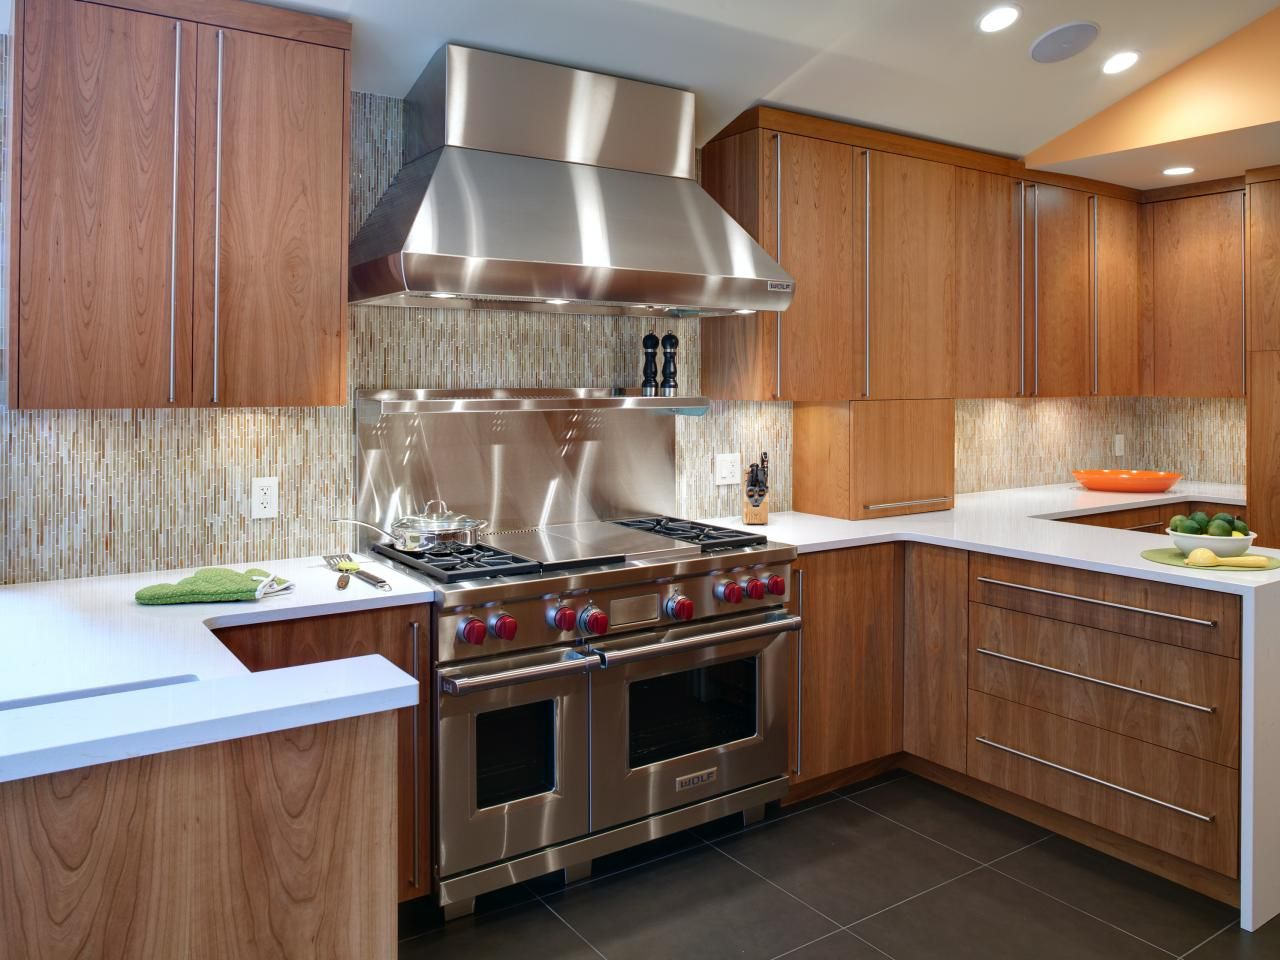 Pictures of Small Kitchen Design Ideas From   Pinterest ...